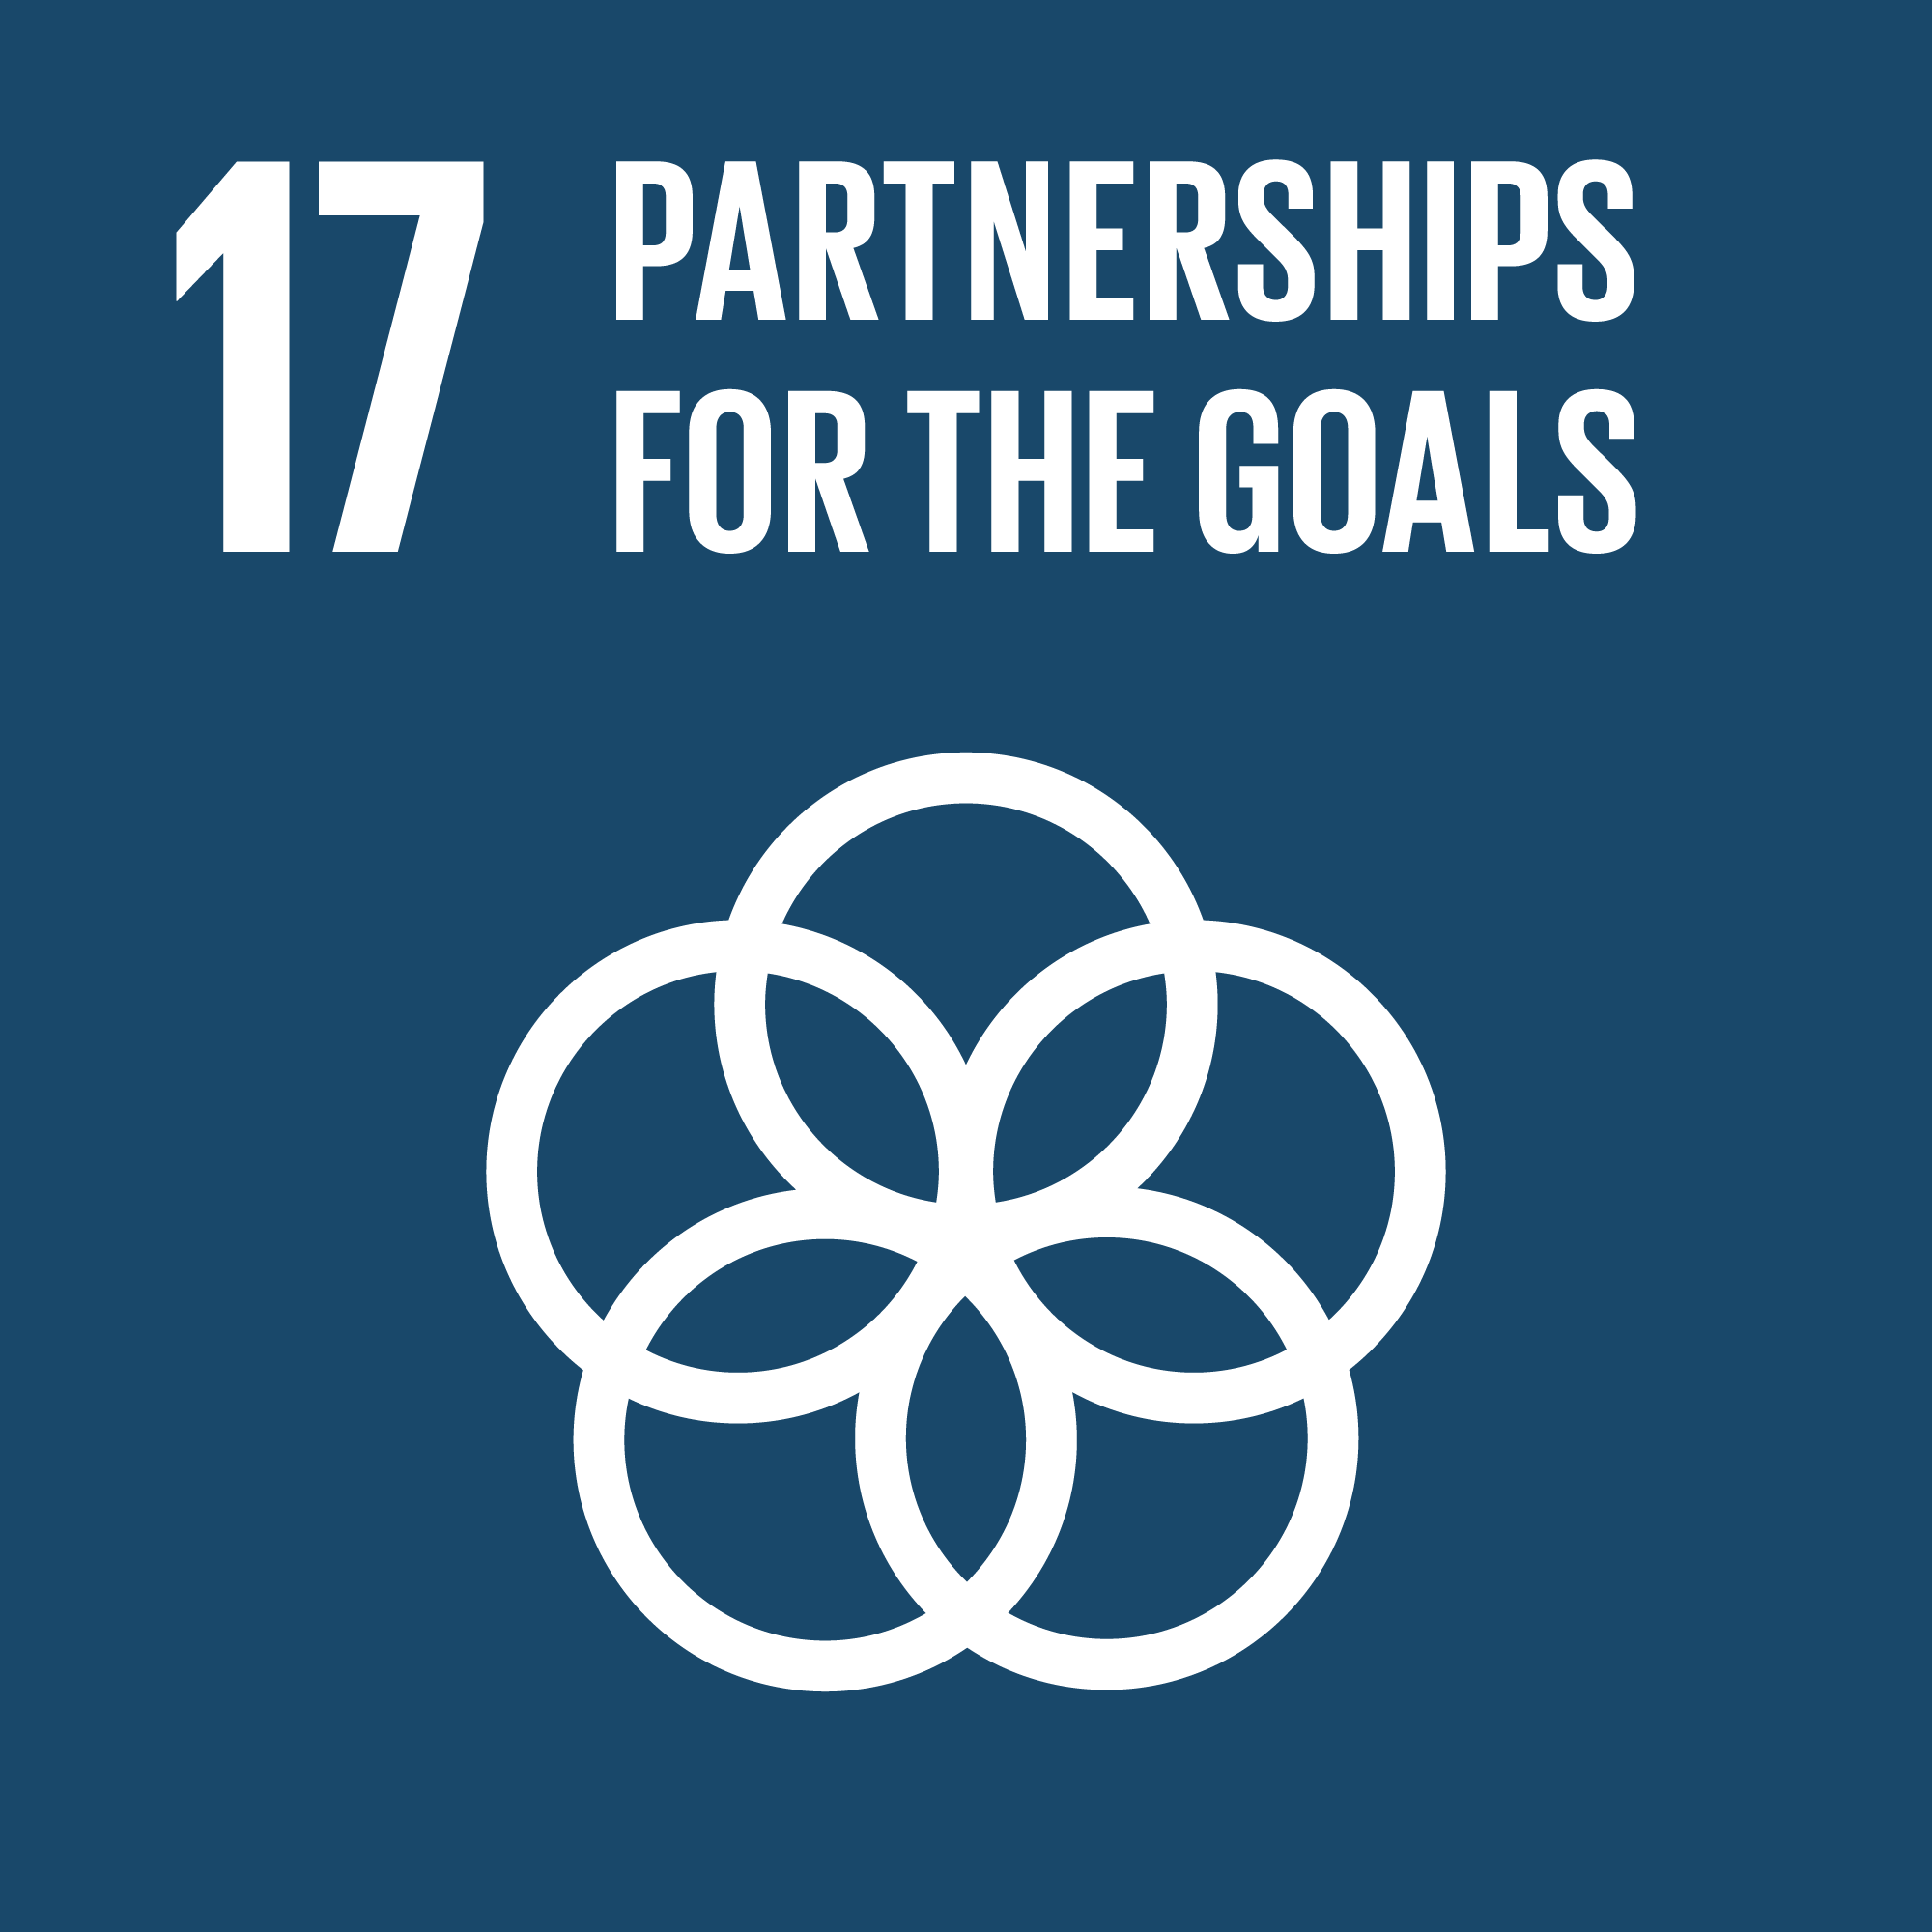 Icon for the global goals number 17, Partnership for the goals